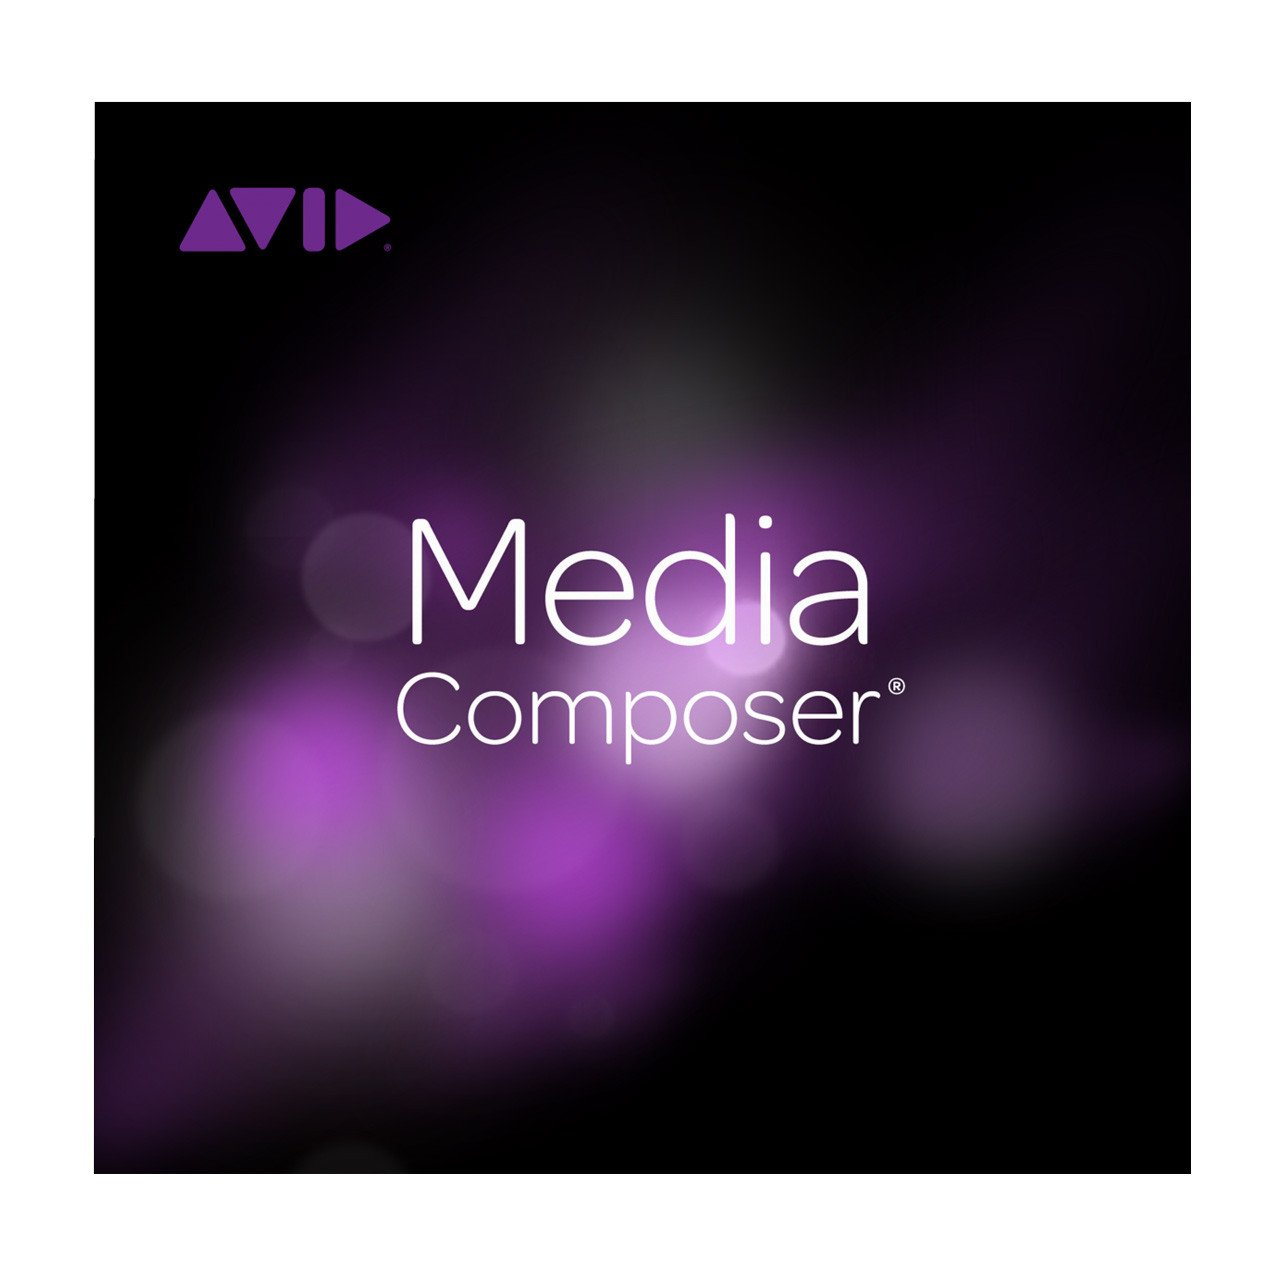 AVID Software - AVID Media Composer Video Editing Software